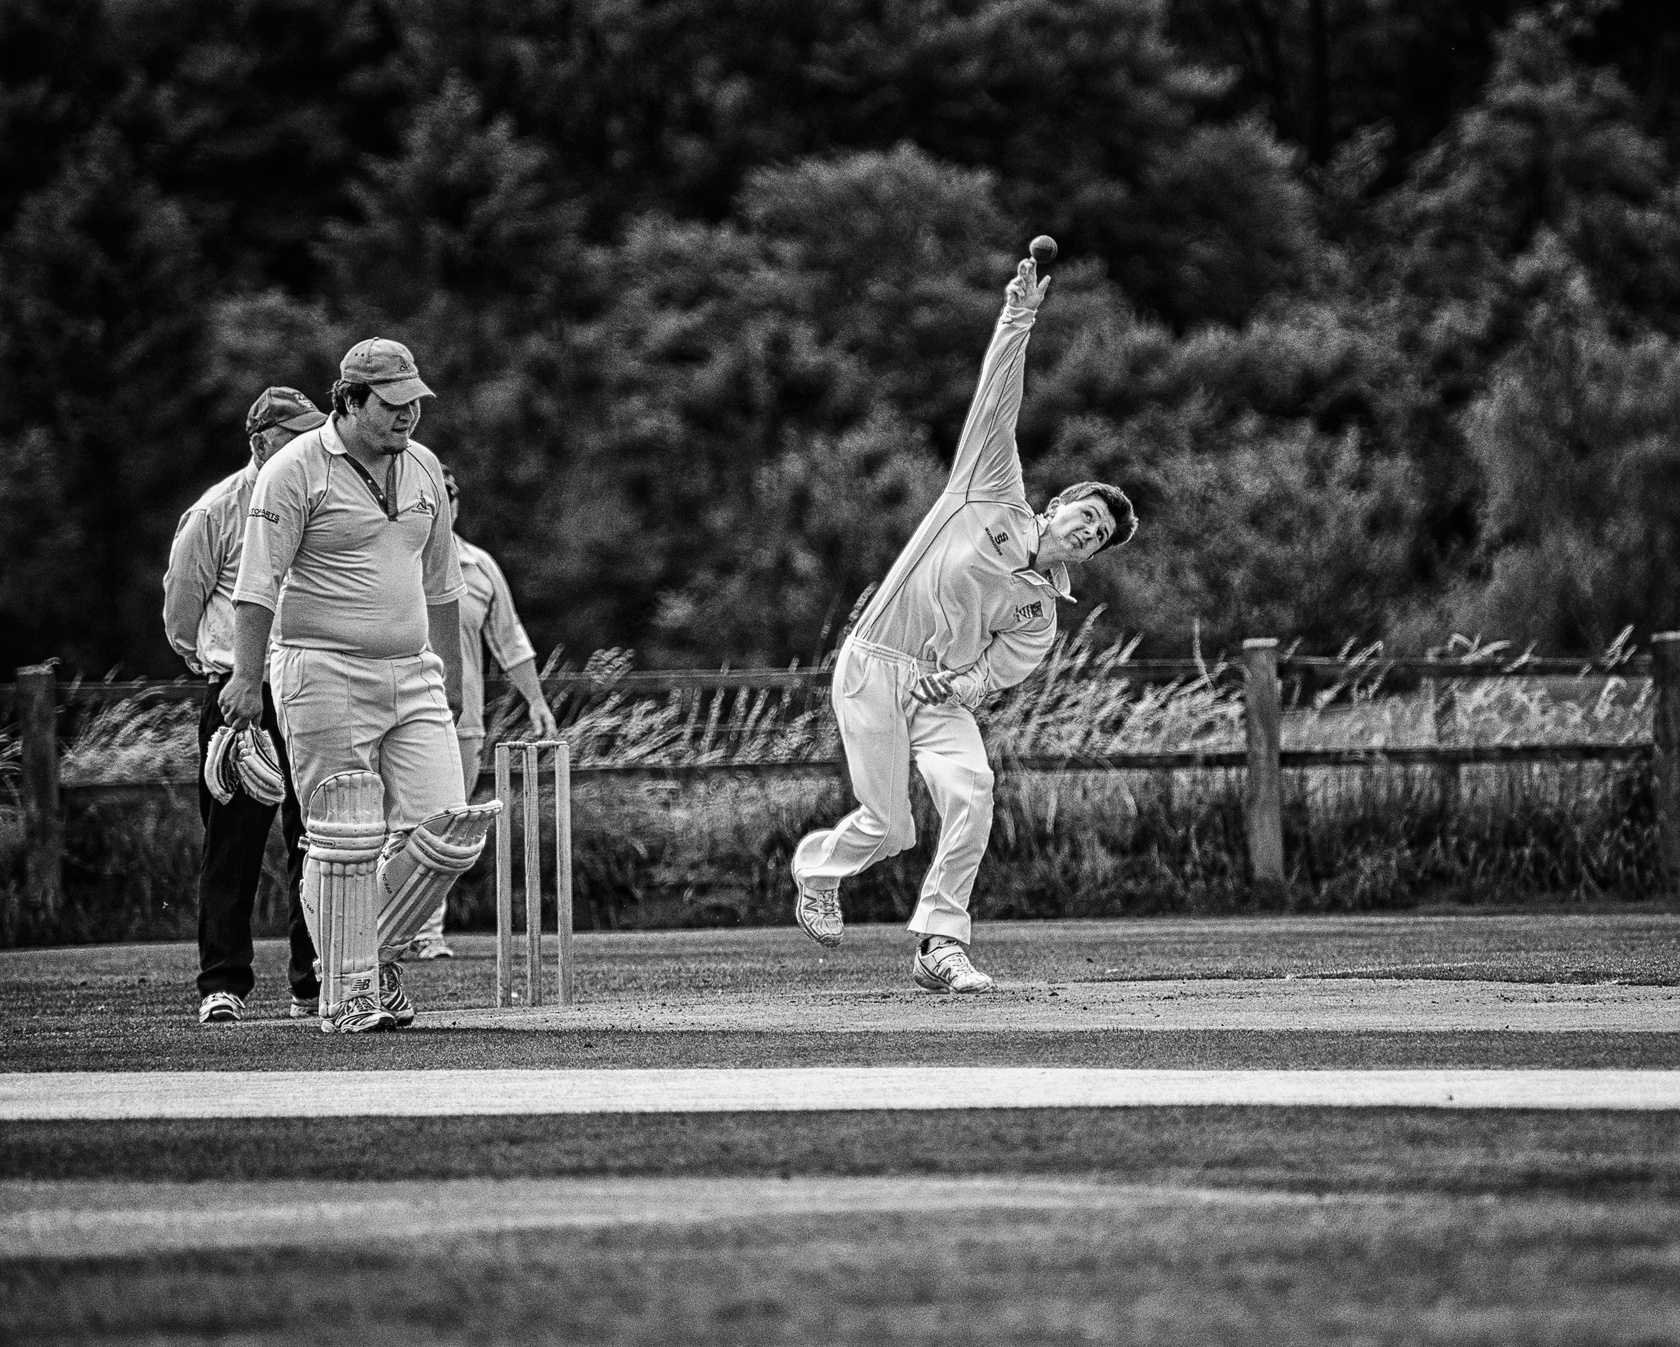 Village Cricket on an English Summers day by Wantie